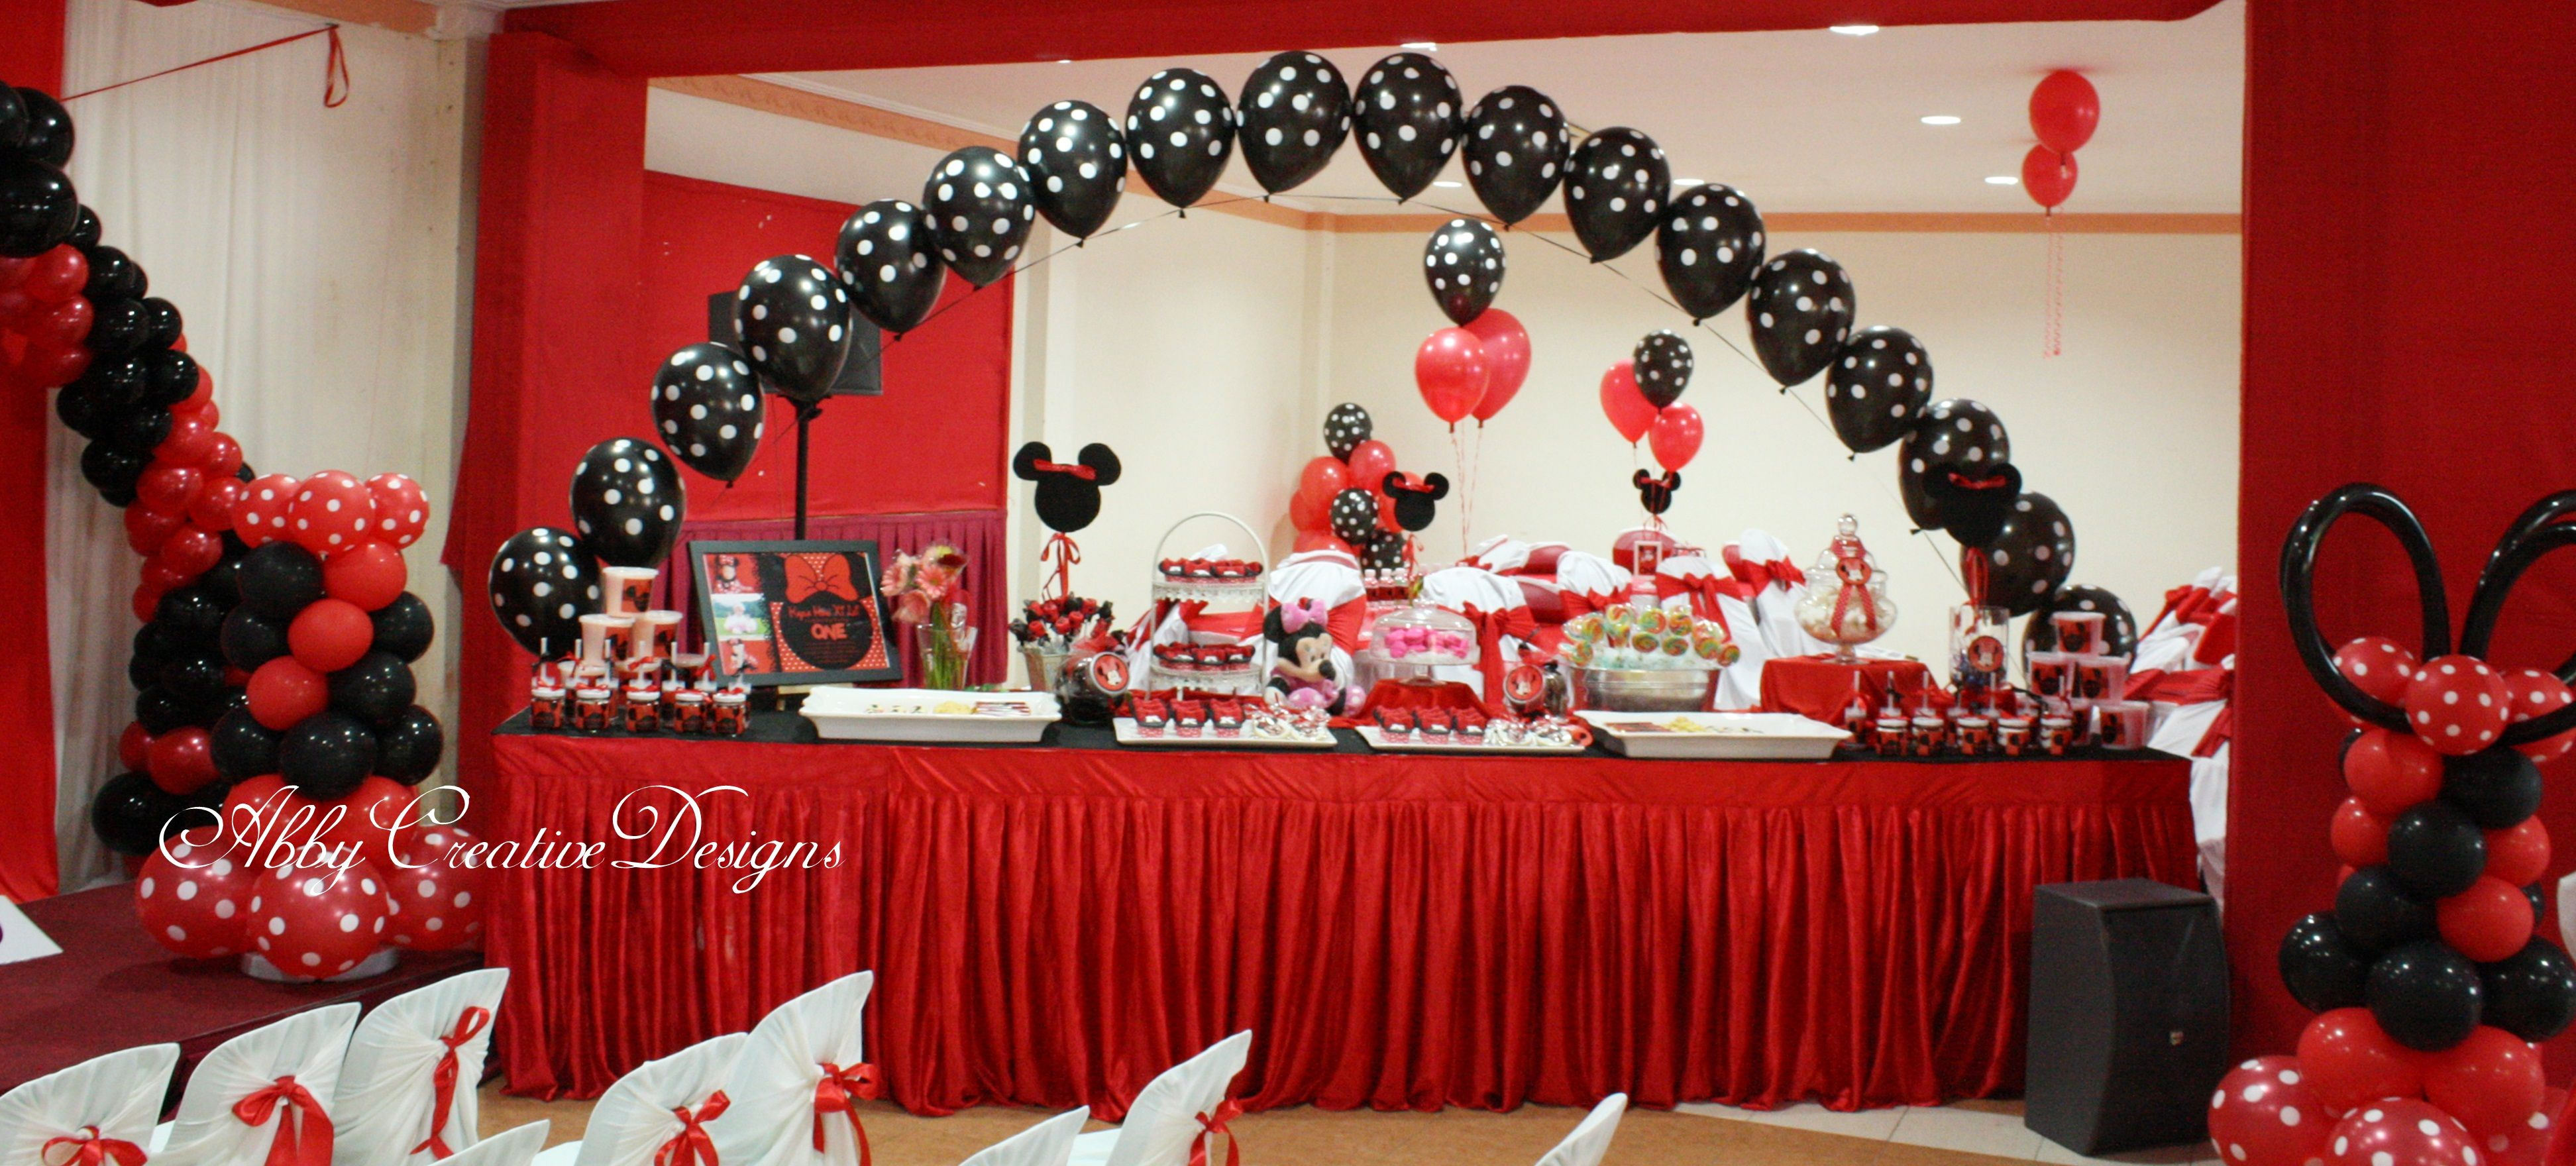 creative buffet table ideas  Minnie Mouse 1st Birthday Party!  Abby ...